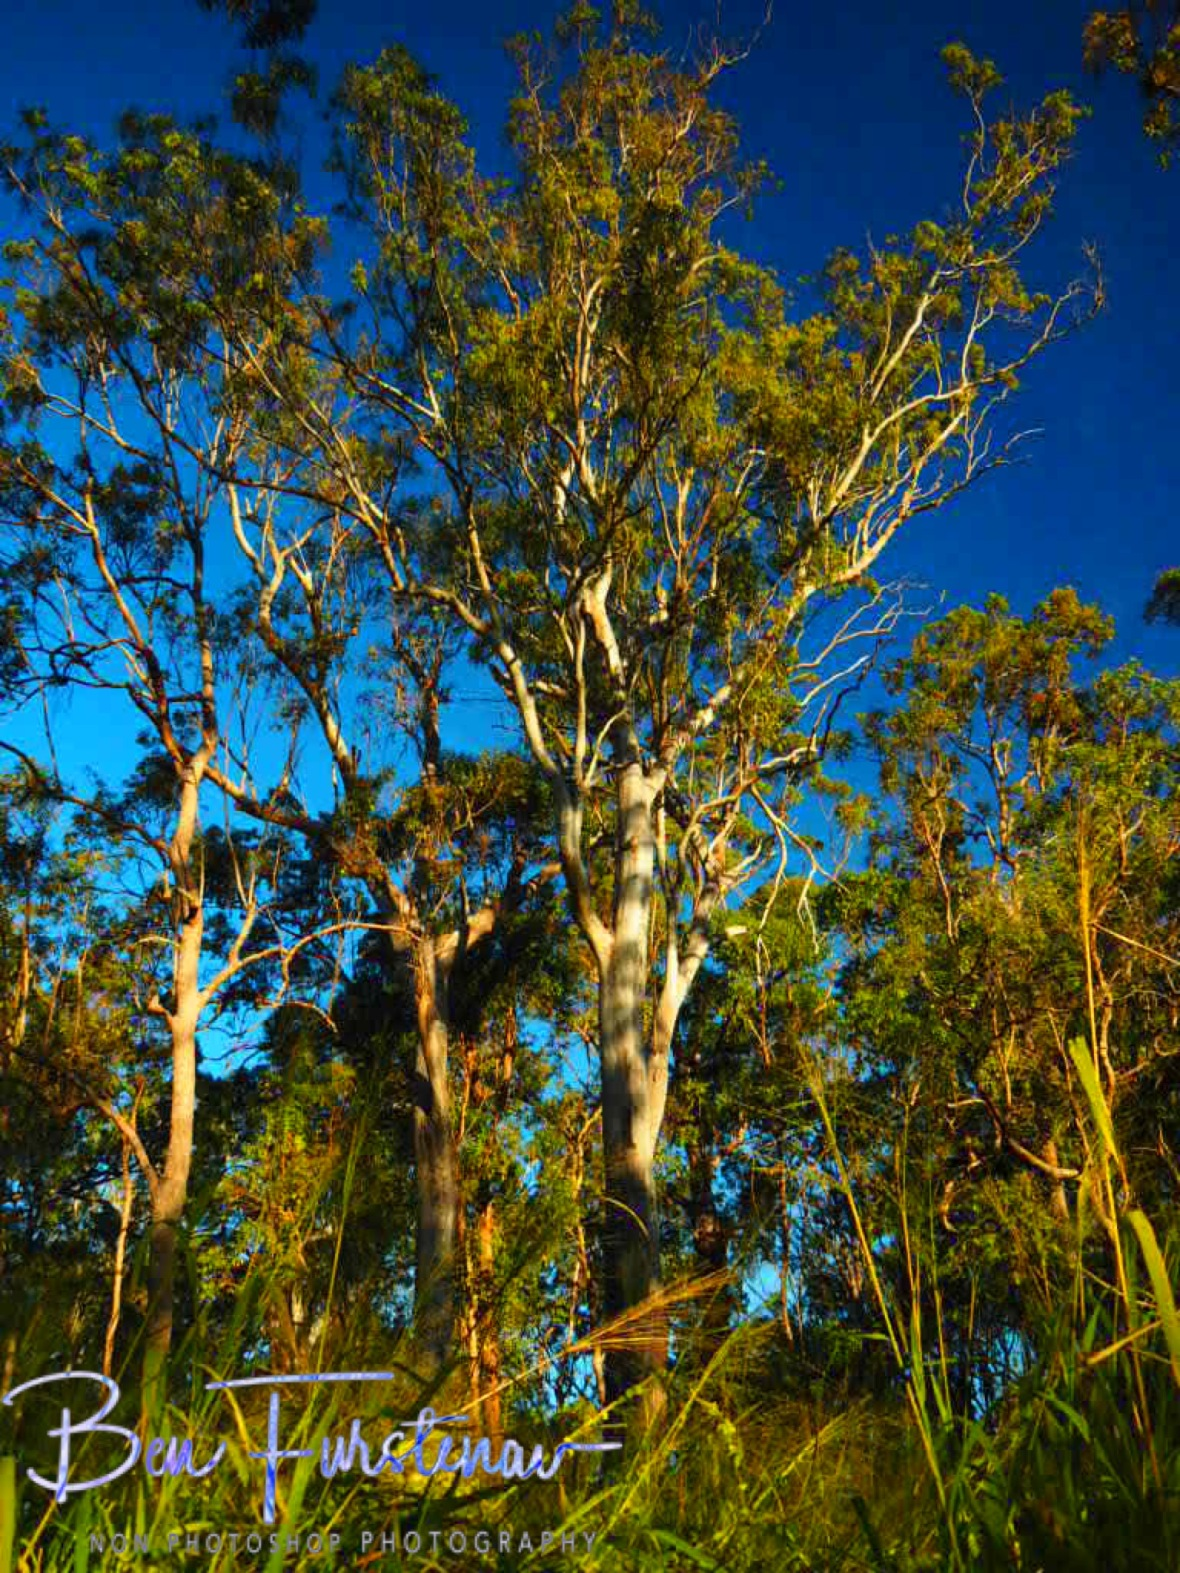 Eucalyptus forest in blue skies, Atherton Tablelands, Far North Queensland, Australia